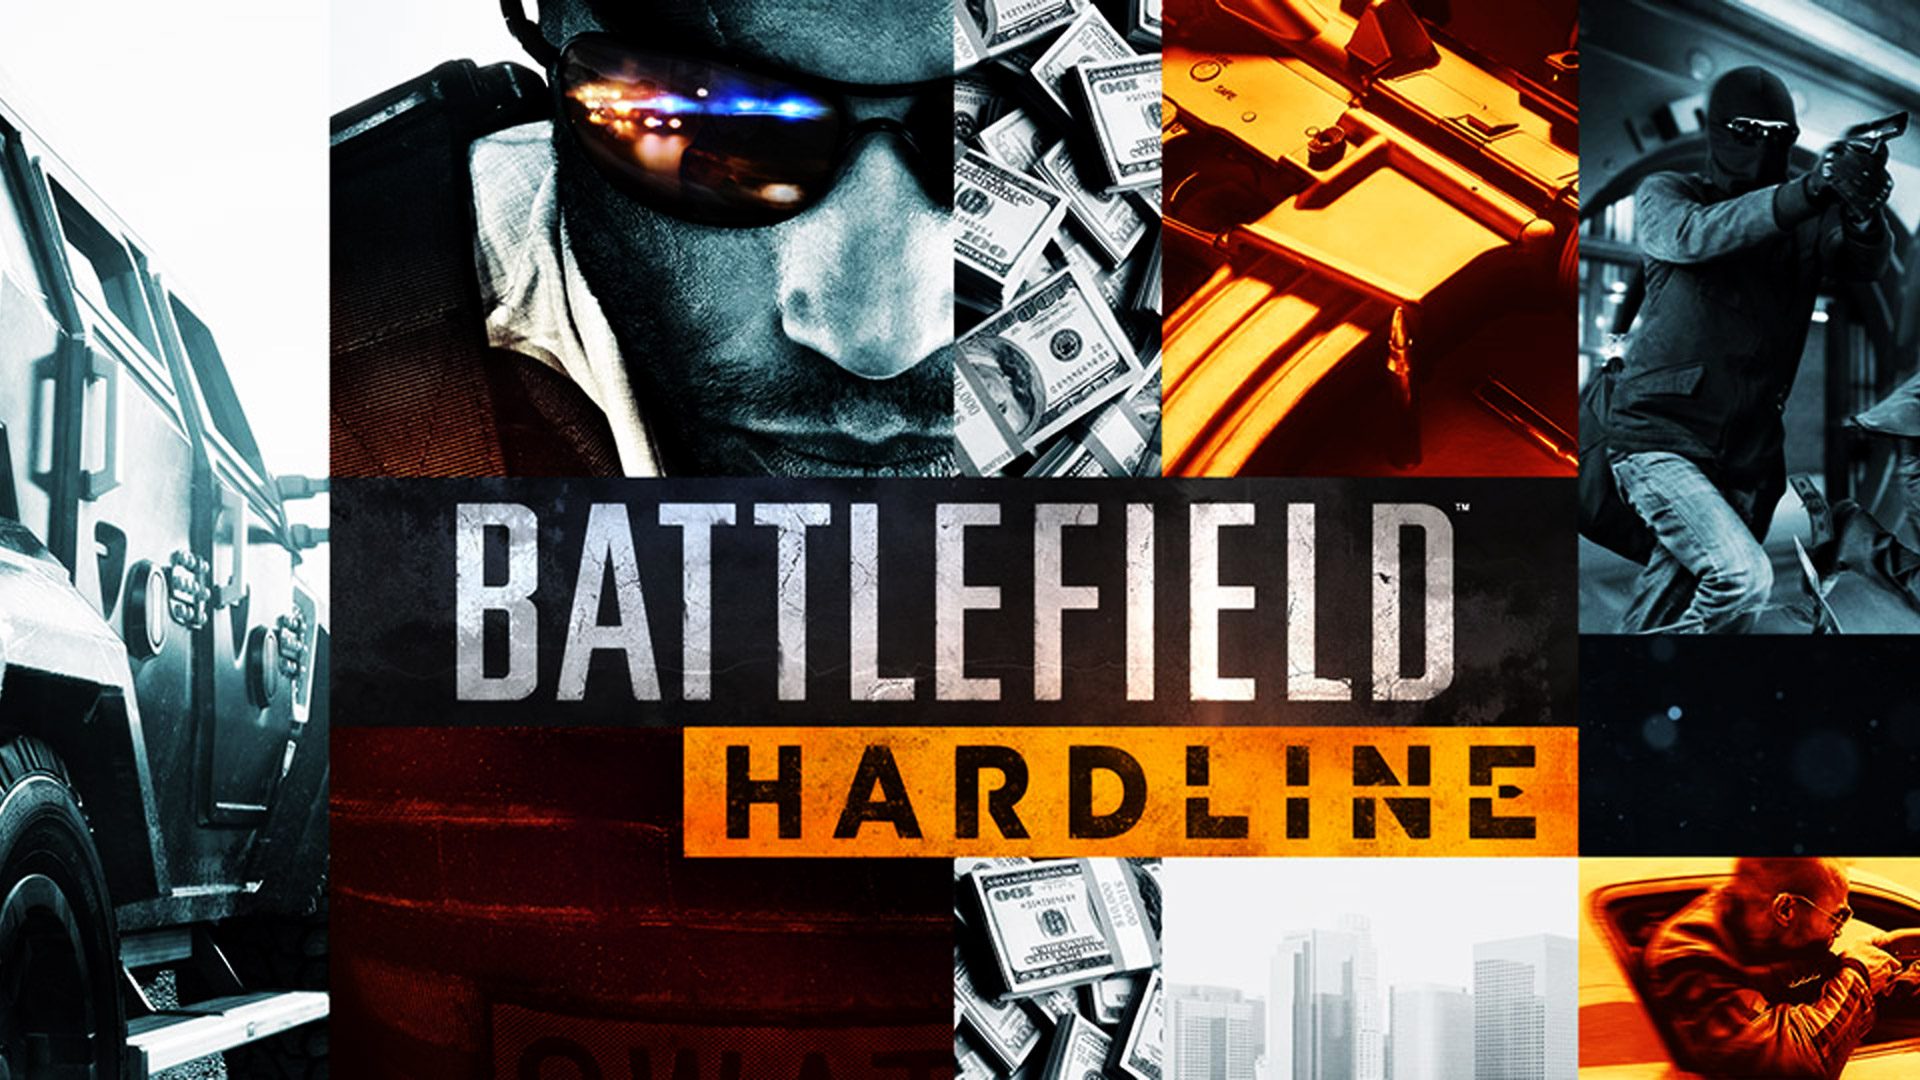 Battlefield: Hardline Wallpaper in 1920x1080